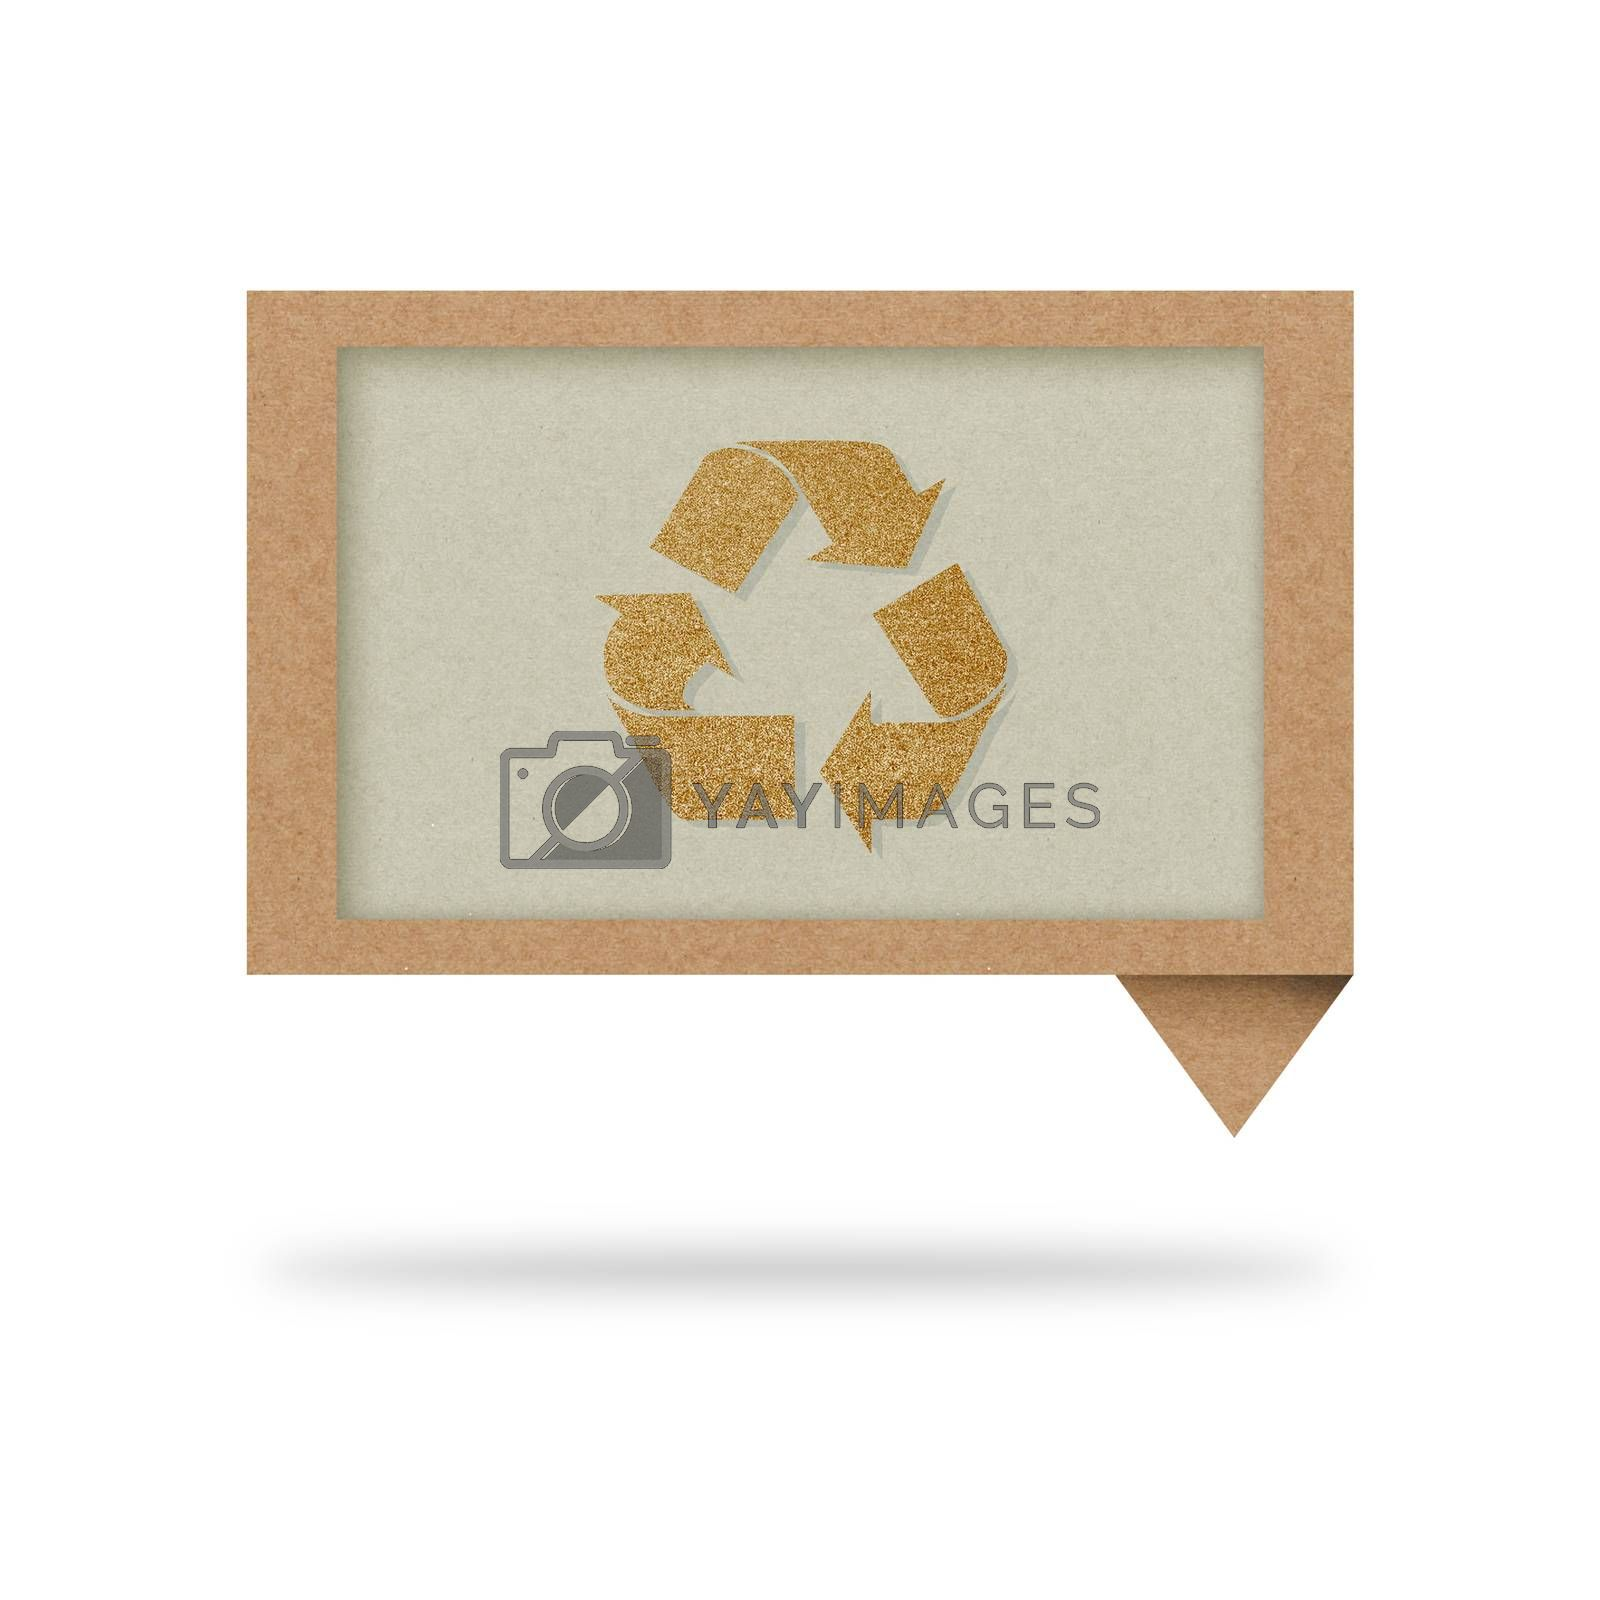 talk tag recycled paper with recycle sign by jakgree